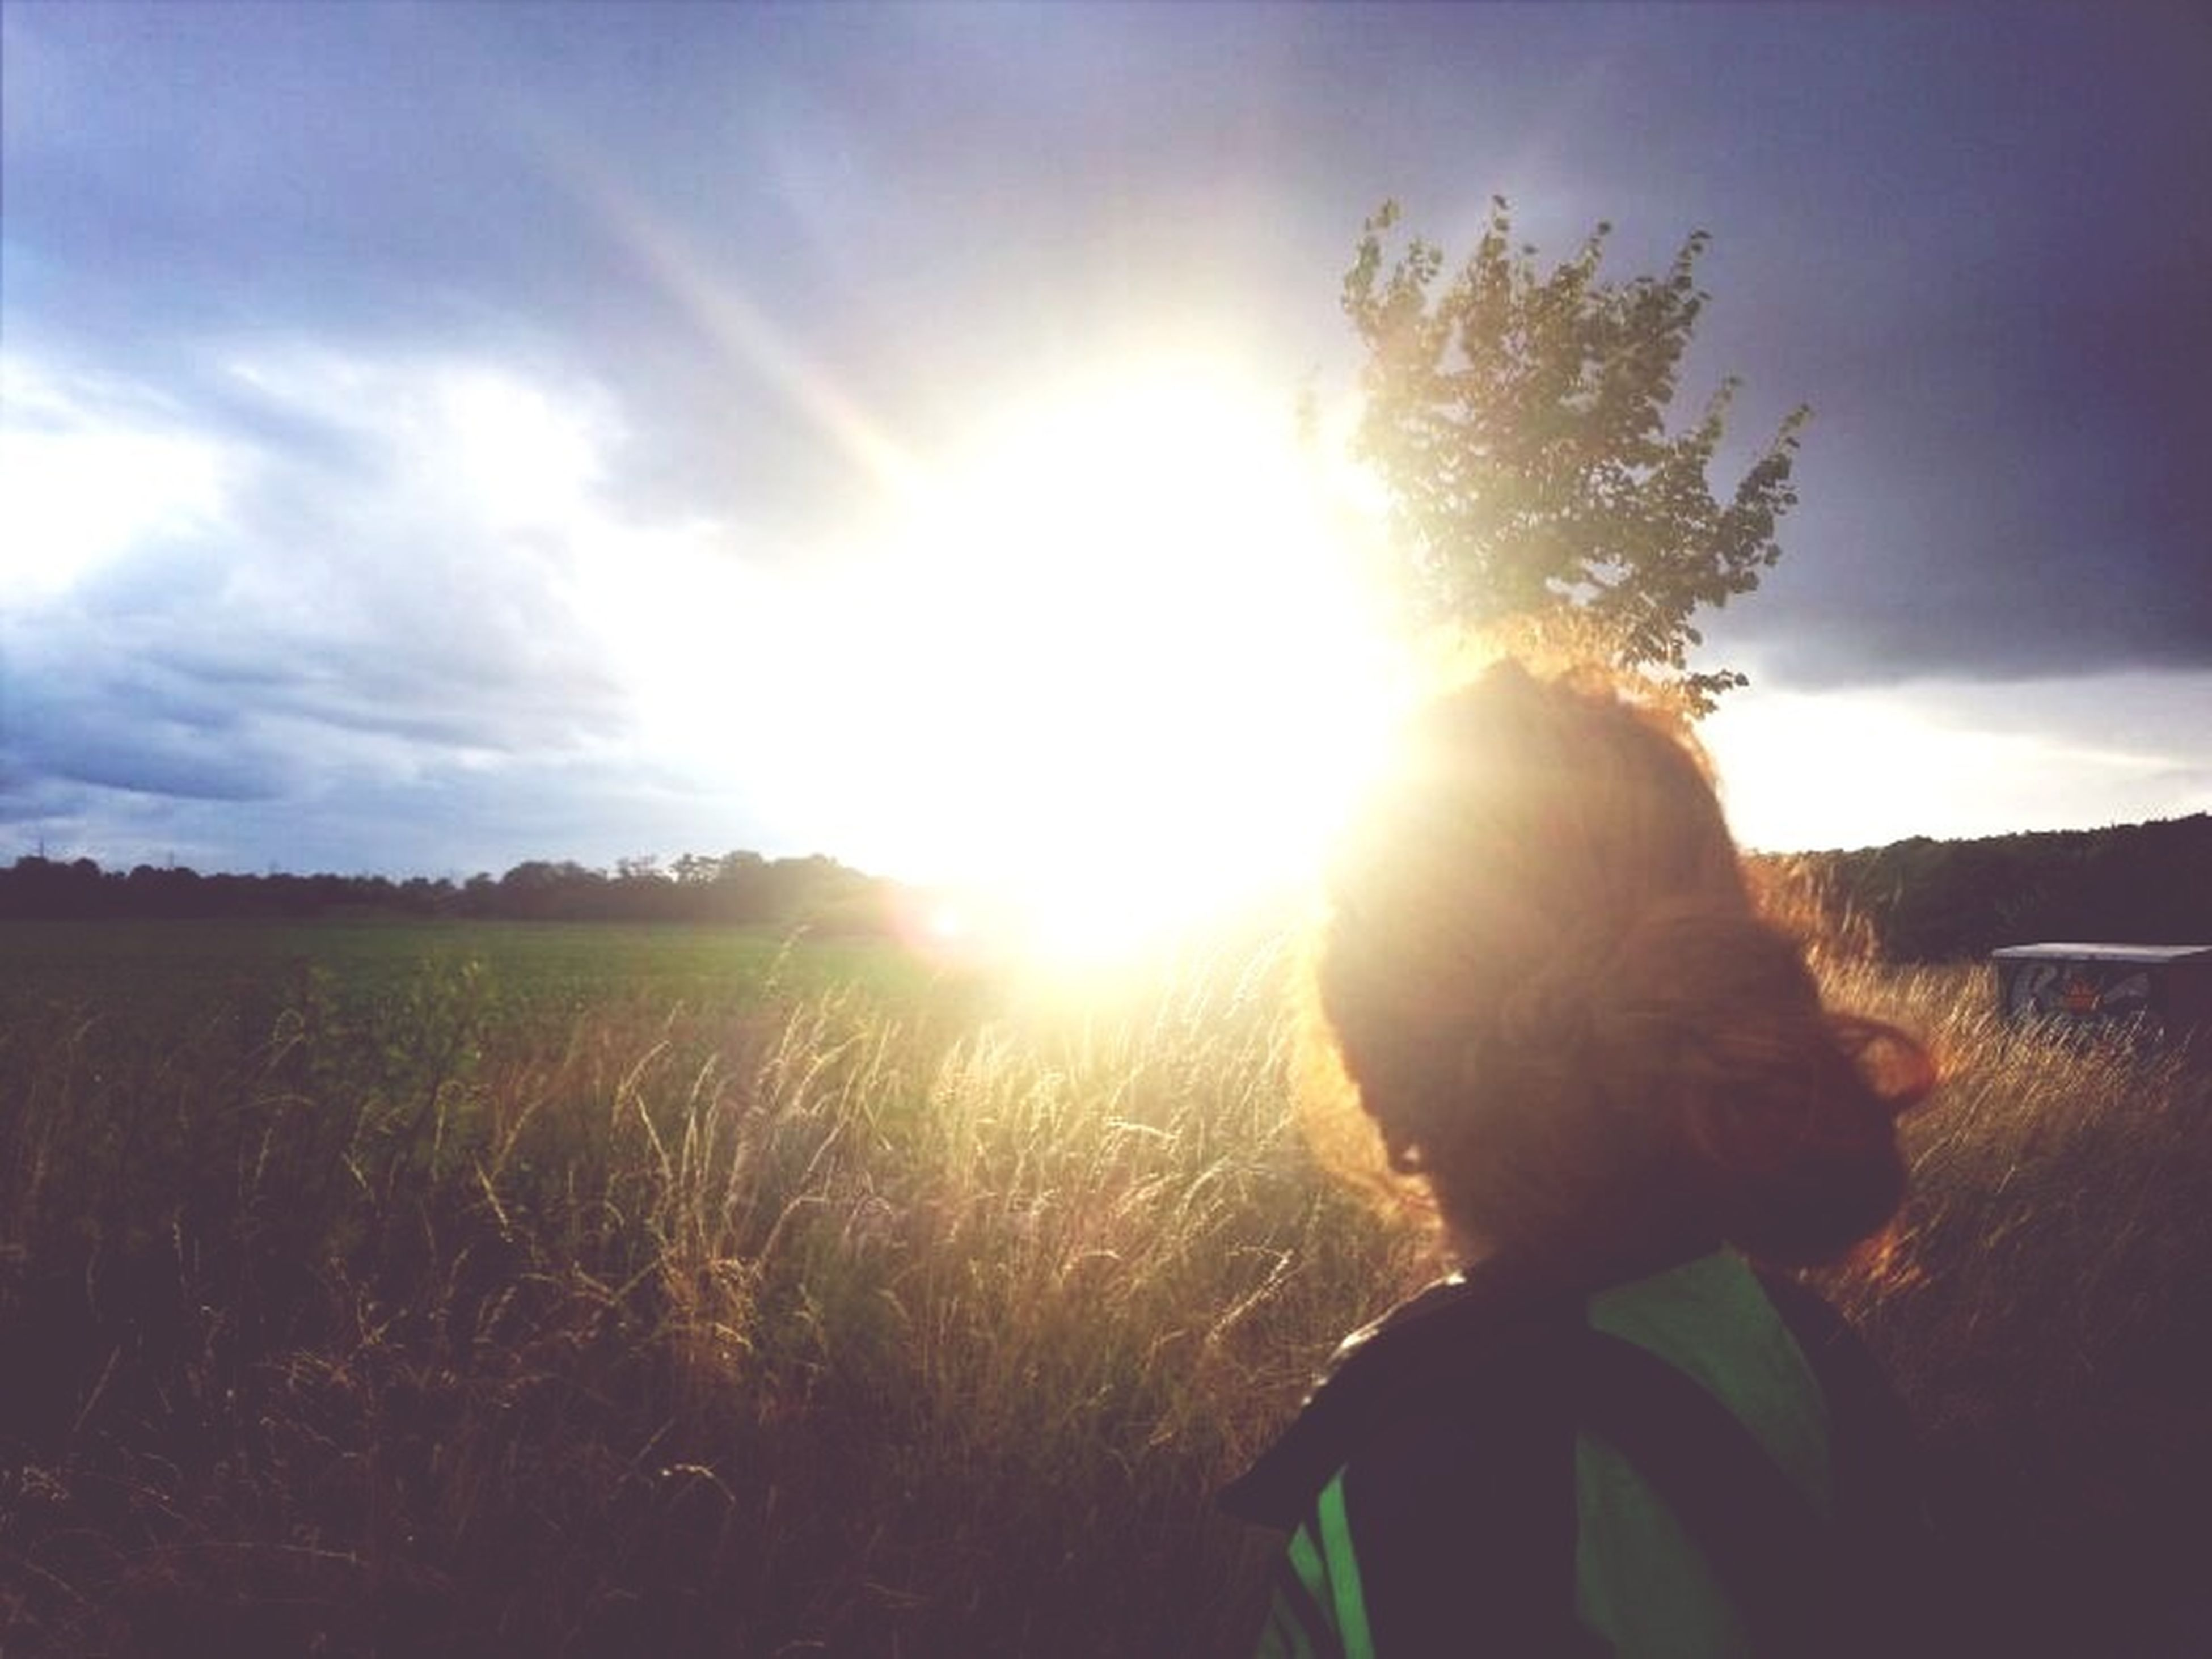 sun, sunbeam, sunlight, sky, lens flare, field, grass, leisure activity, lifestyles, nature, cloud - sky, landscape, sunset, sunny, cloud, outdoors, rear view, bright